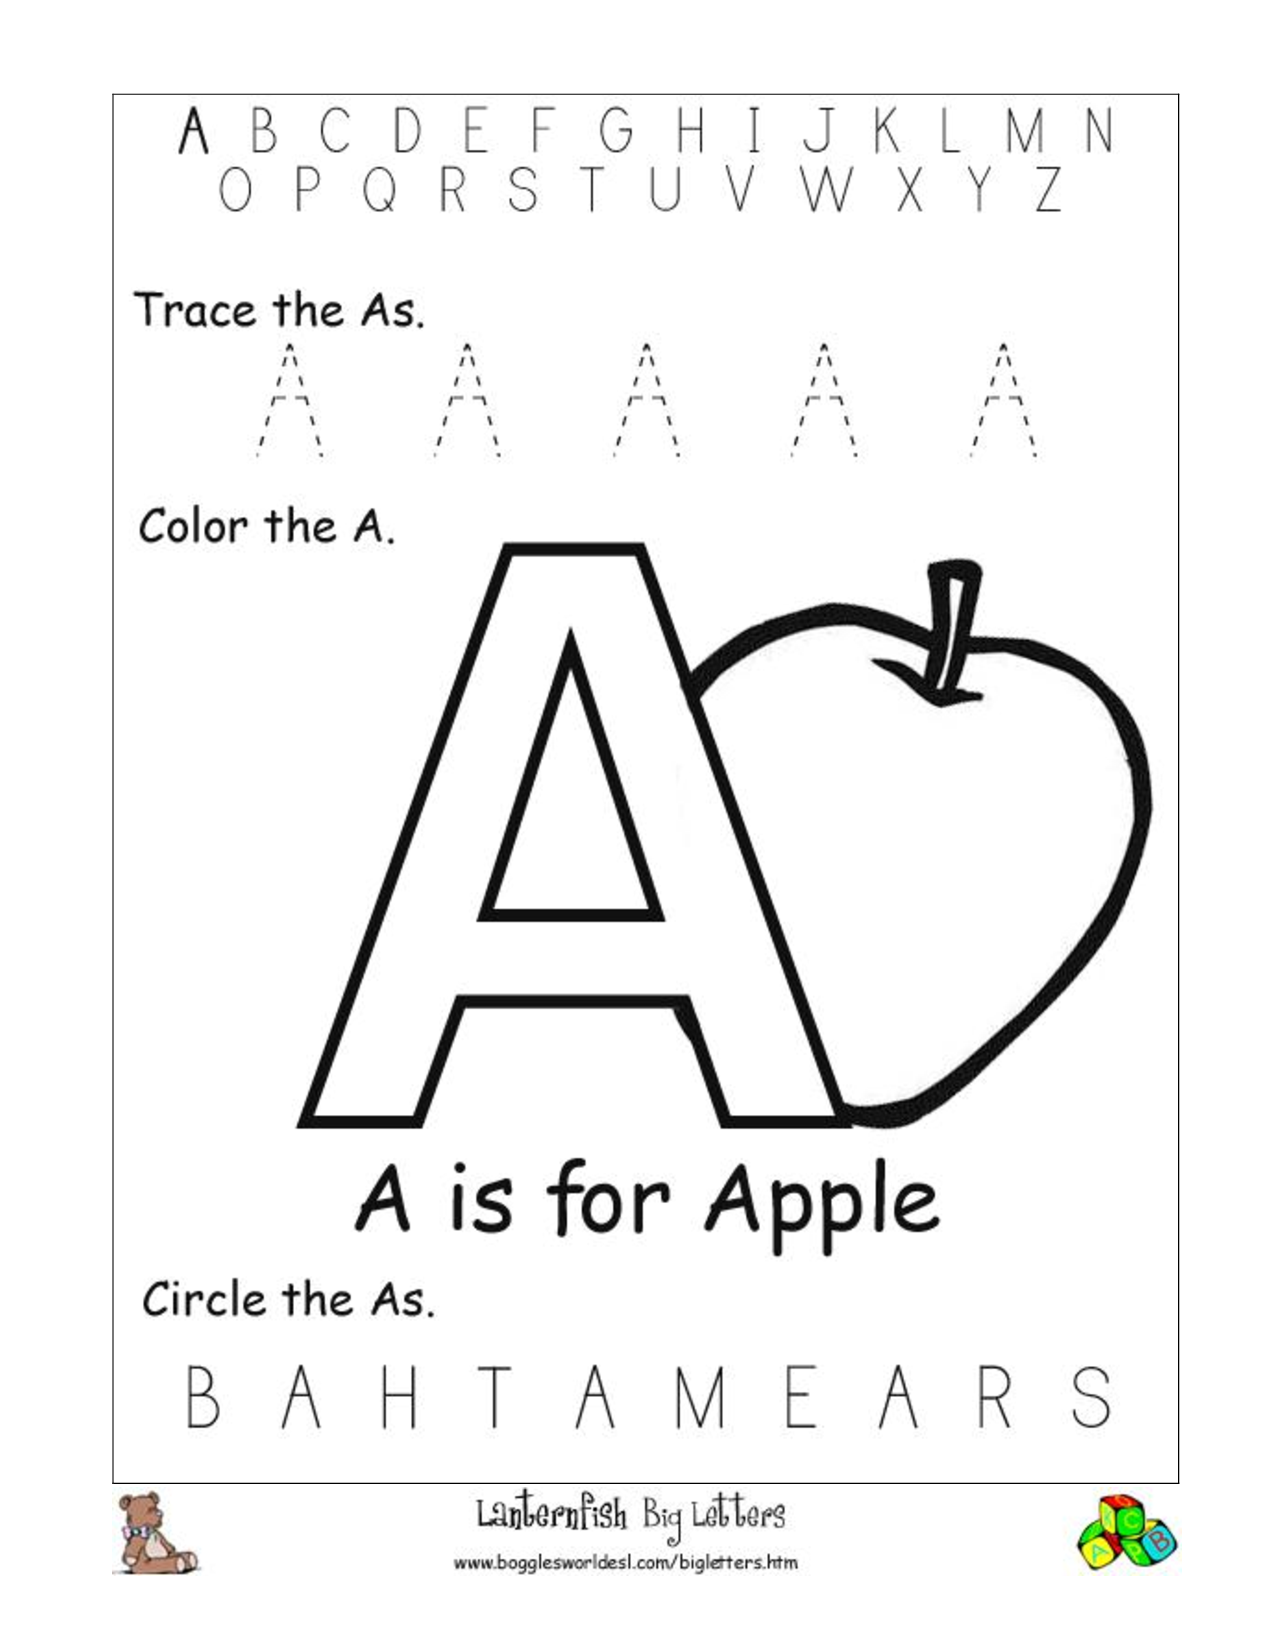 Worksheets Alphabet Recognition Worksheets letter recognition worksheets alphabet worksheet big a download as doc